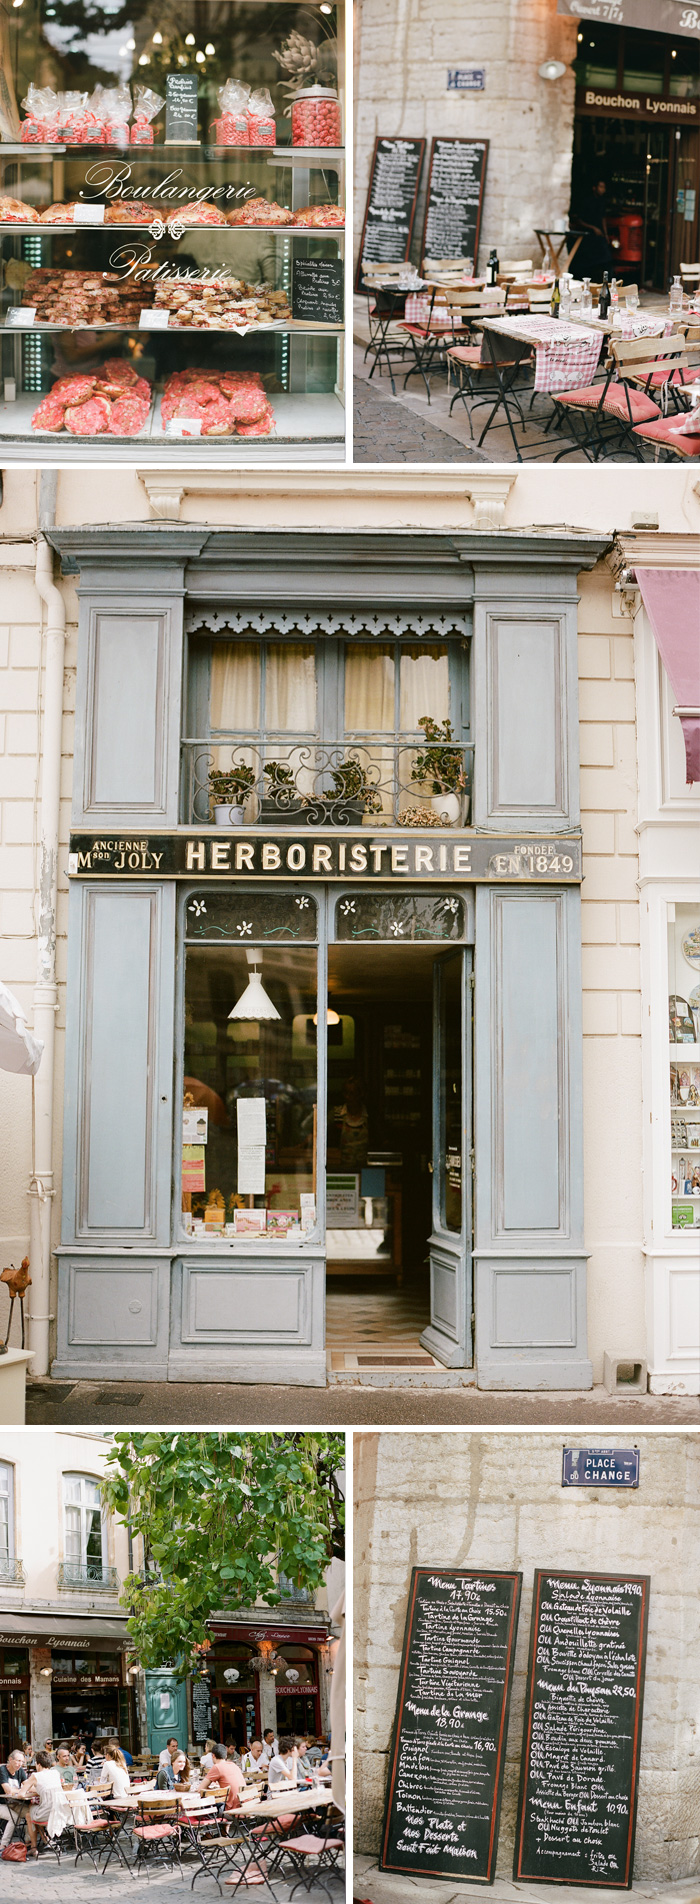 A boulangerie and several charming storefronts spotted in Lyon; photo by Sylvie Gil